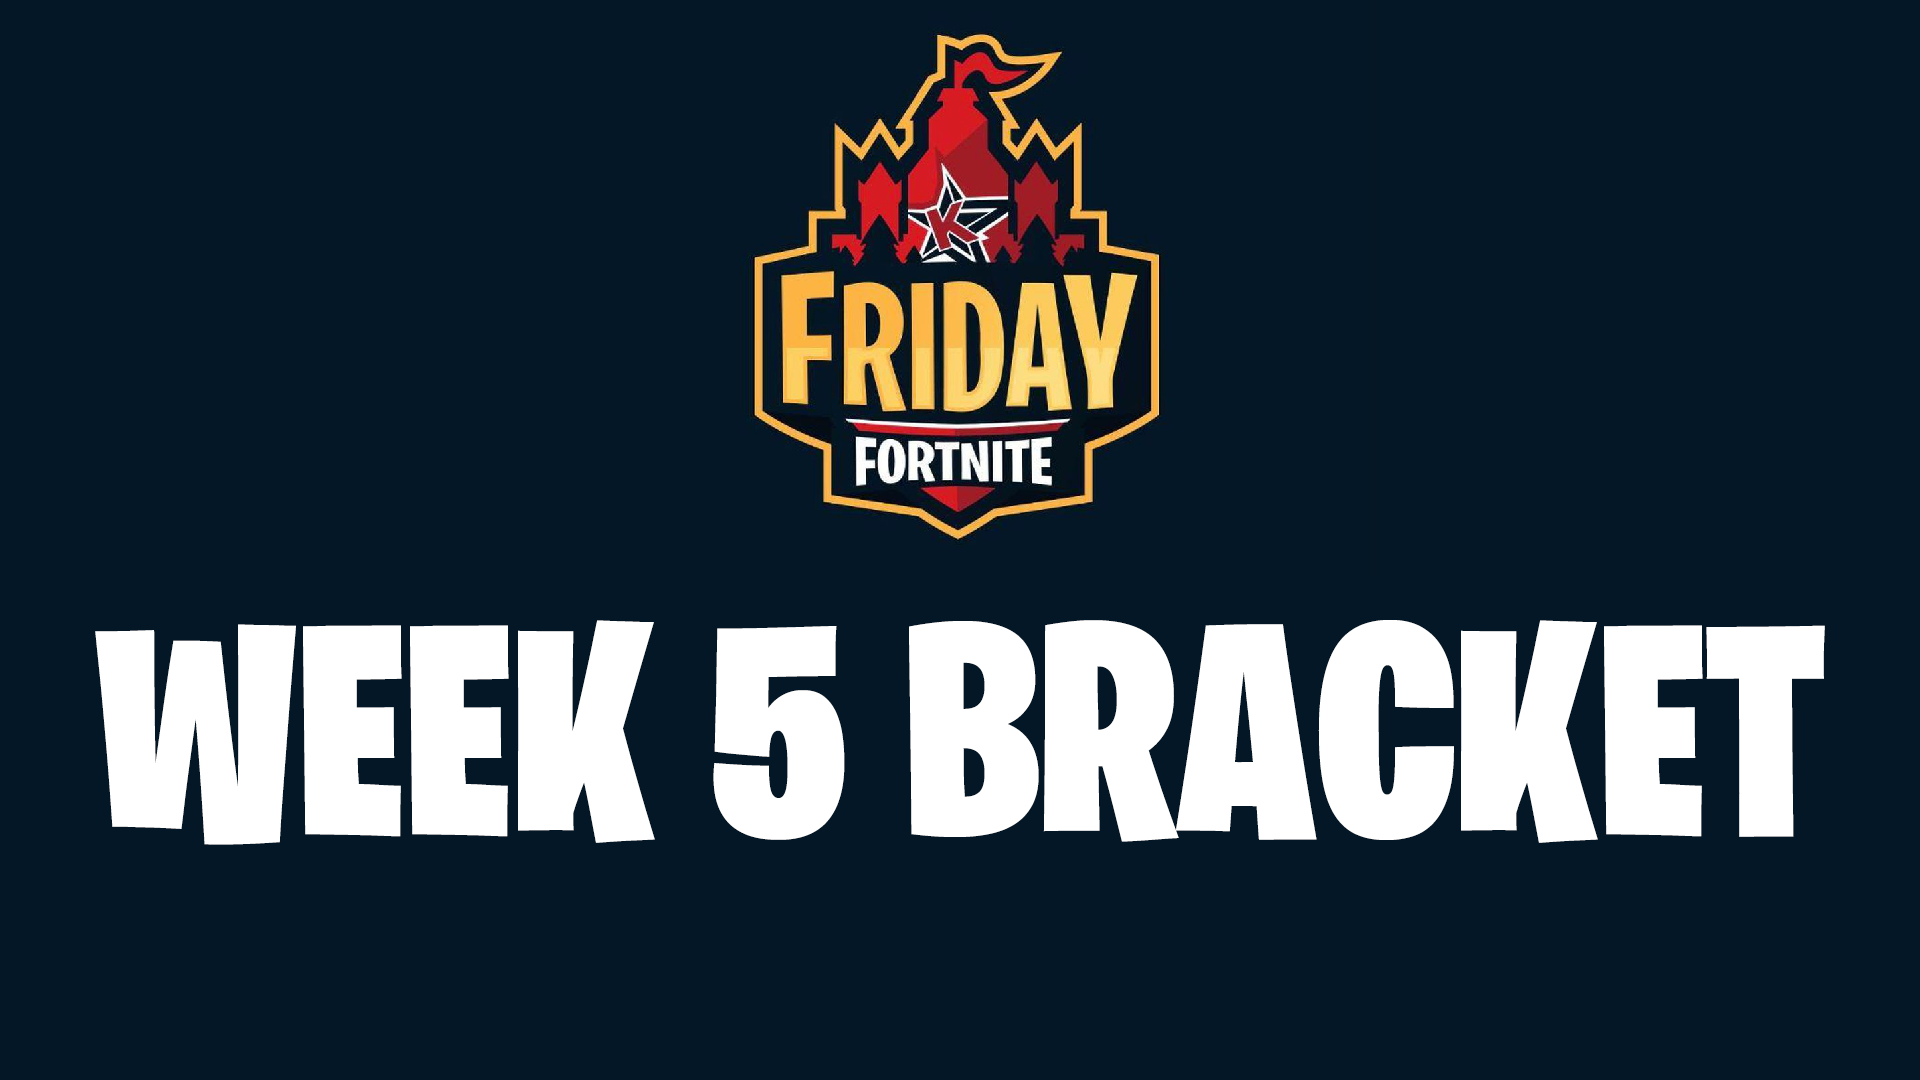 Friday Fortnite Barcket Friday Fortnite Bracket Results From Week 5 Tourney Starring Juju Smith Schuster Sporting News Canada